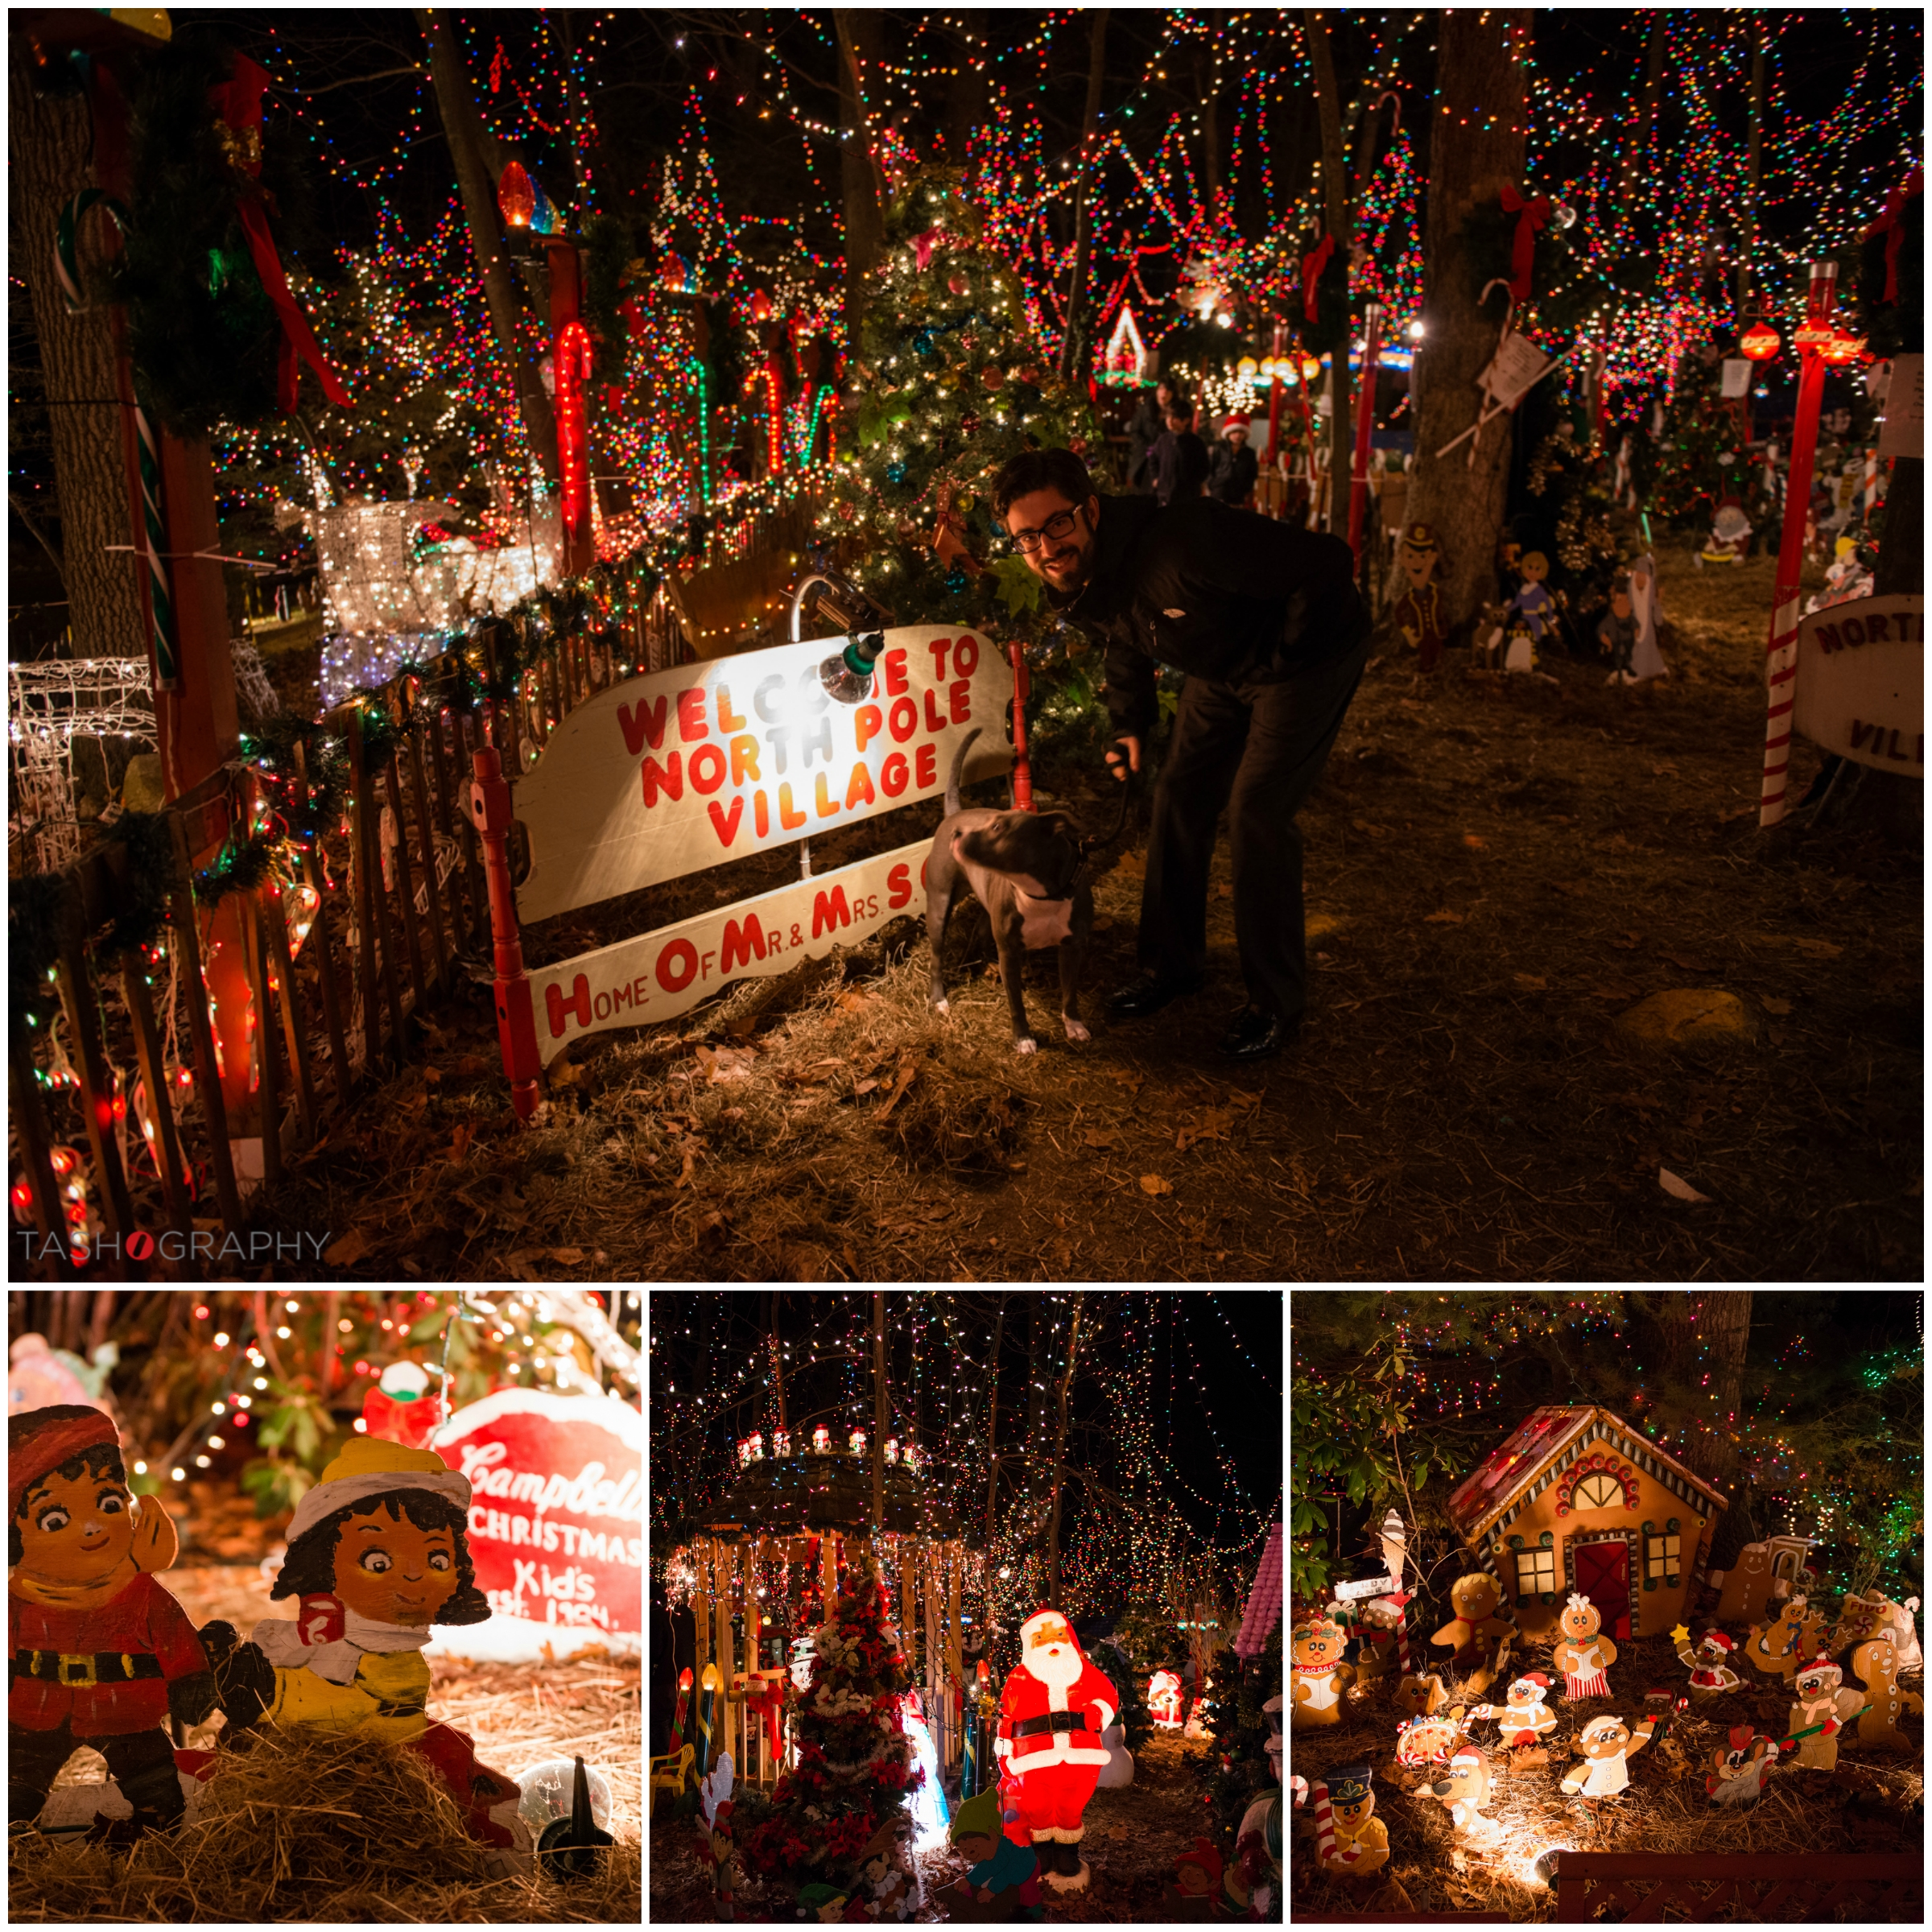 Top image: My husband, Trent and our dog Lulu from the first night we visitedthe Setti's 2014 display.